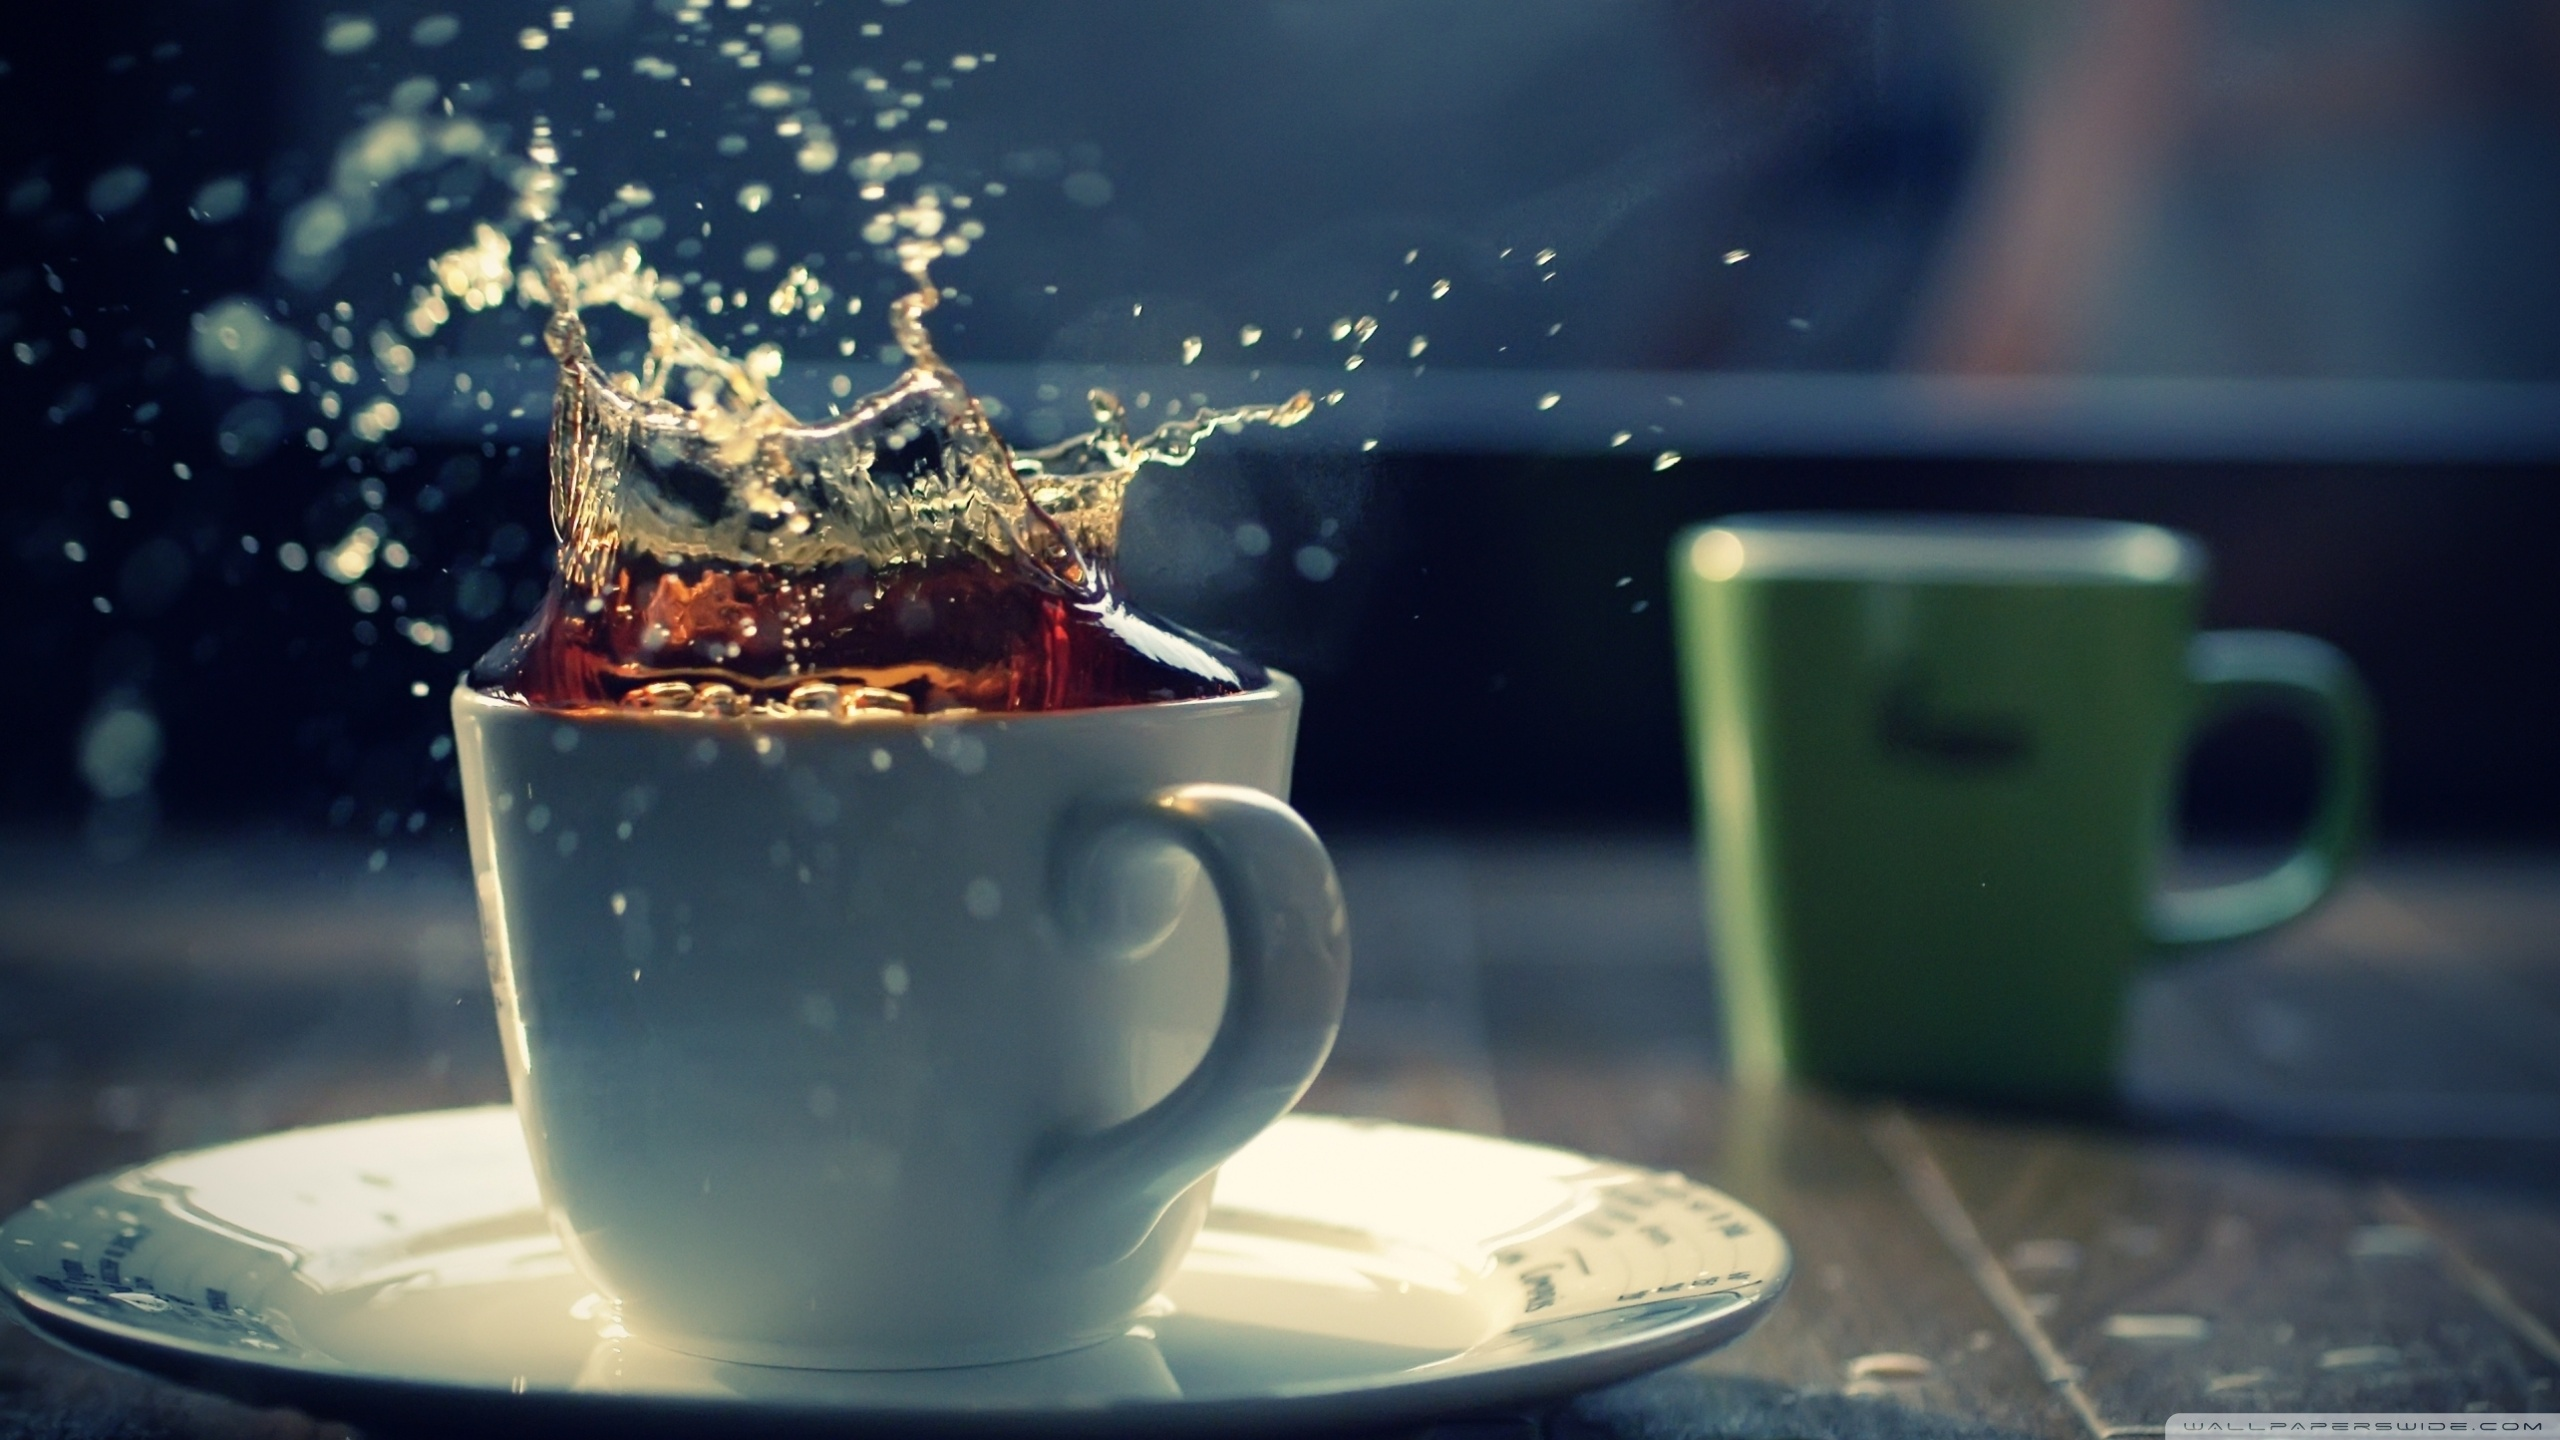 Cup Tea Splash Photo